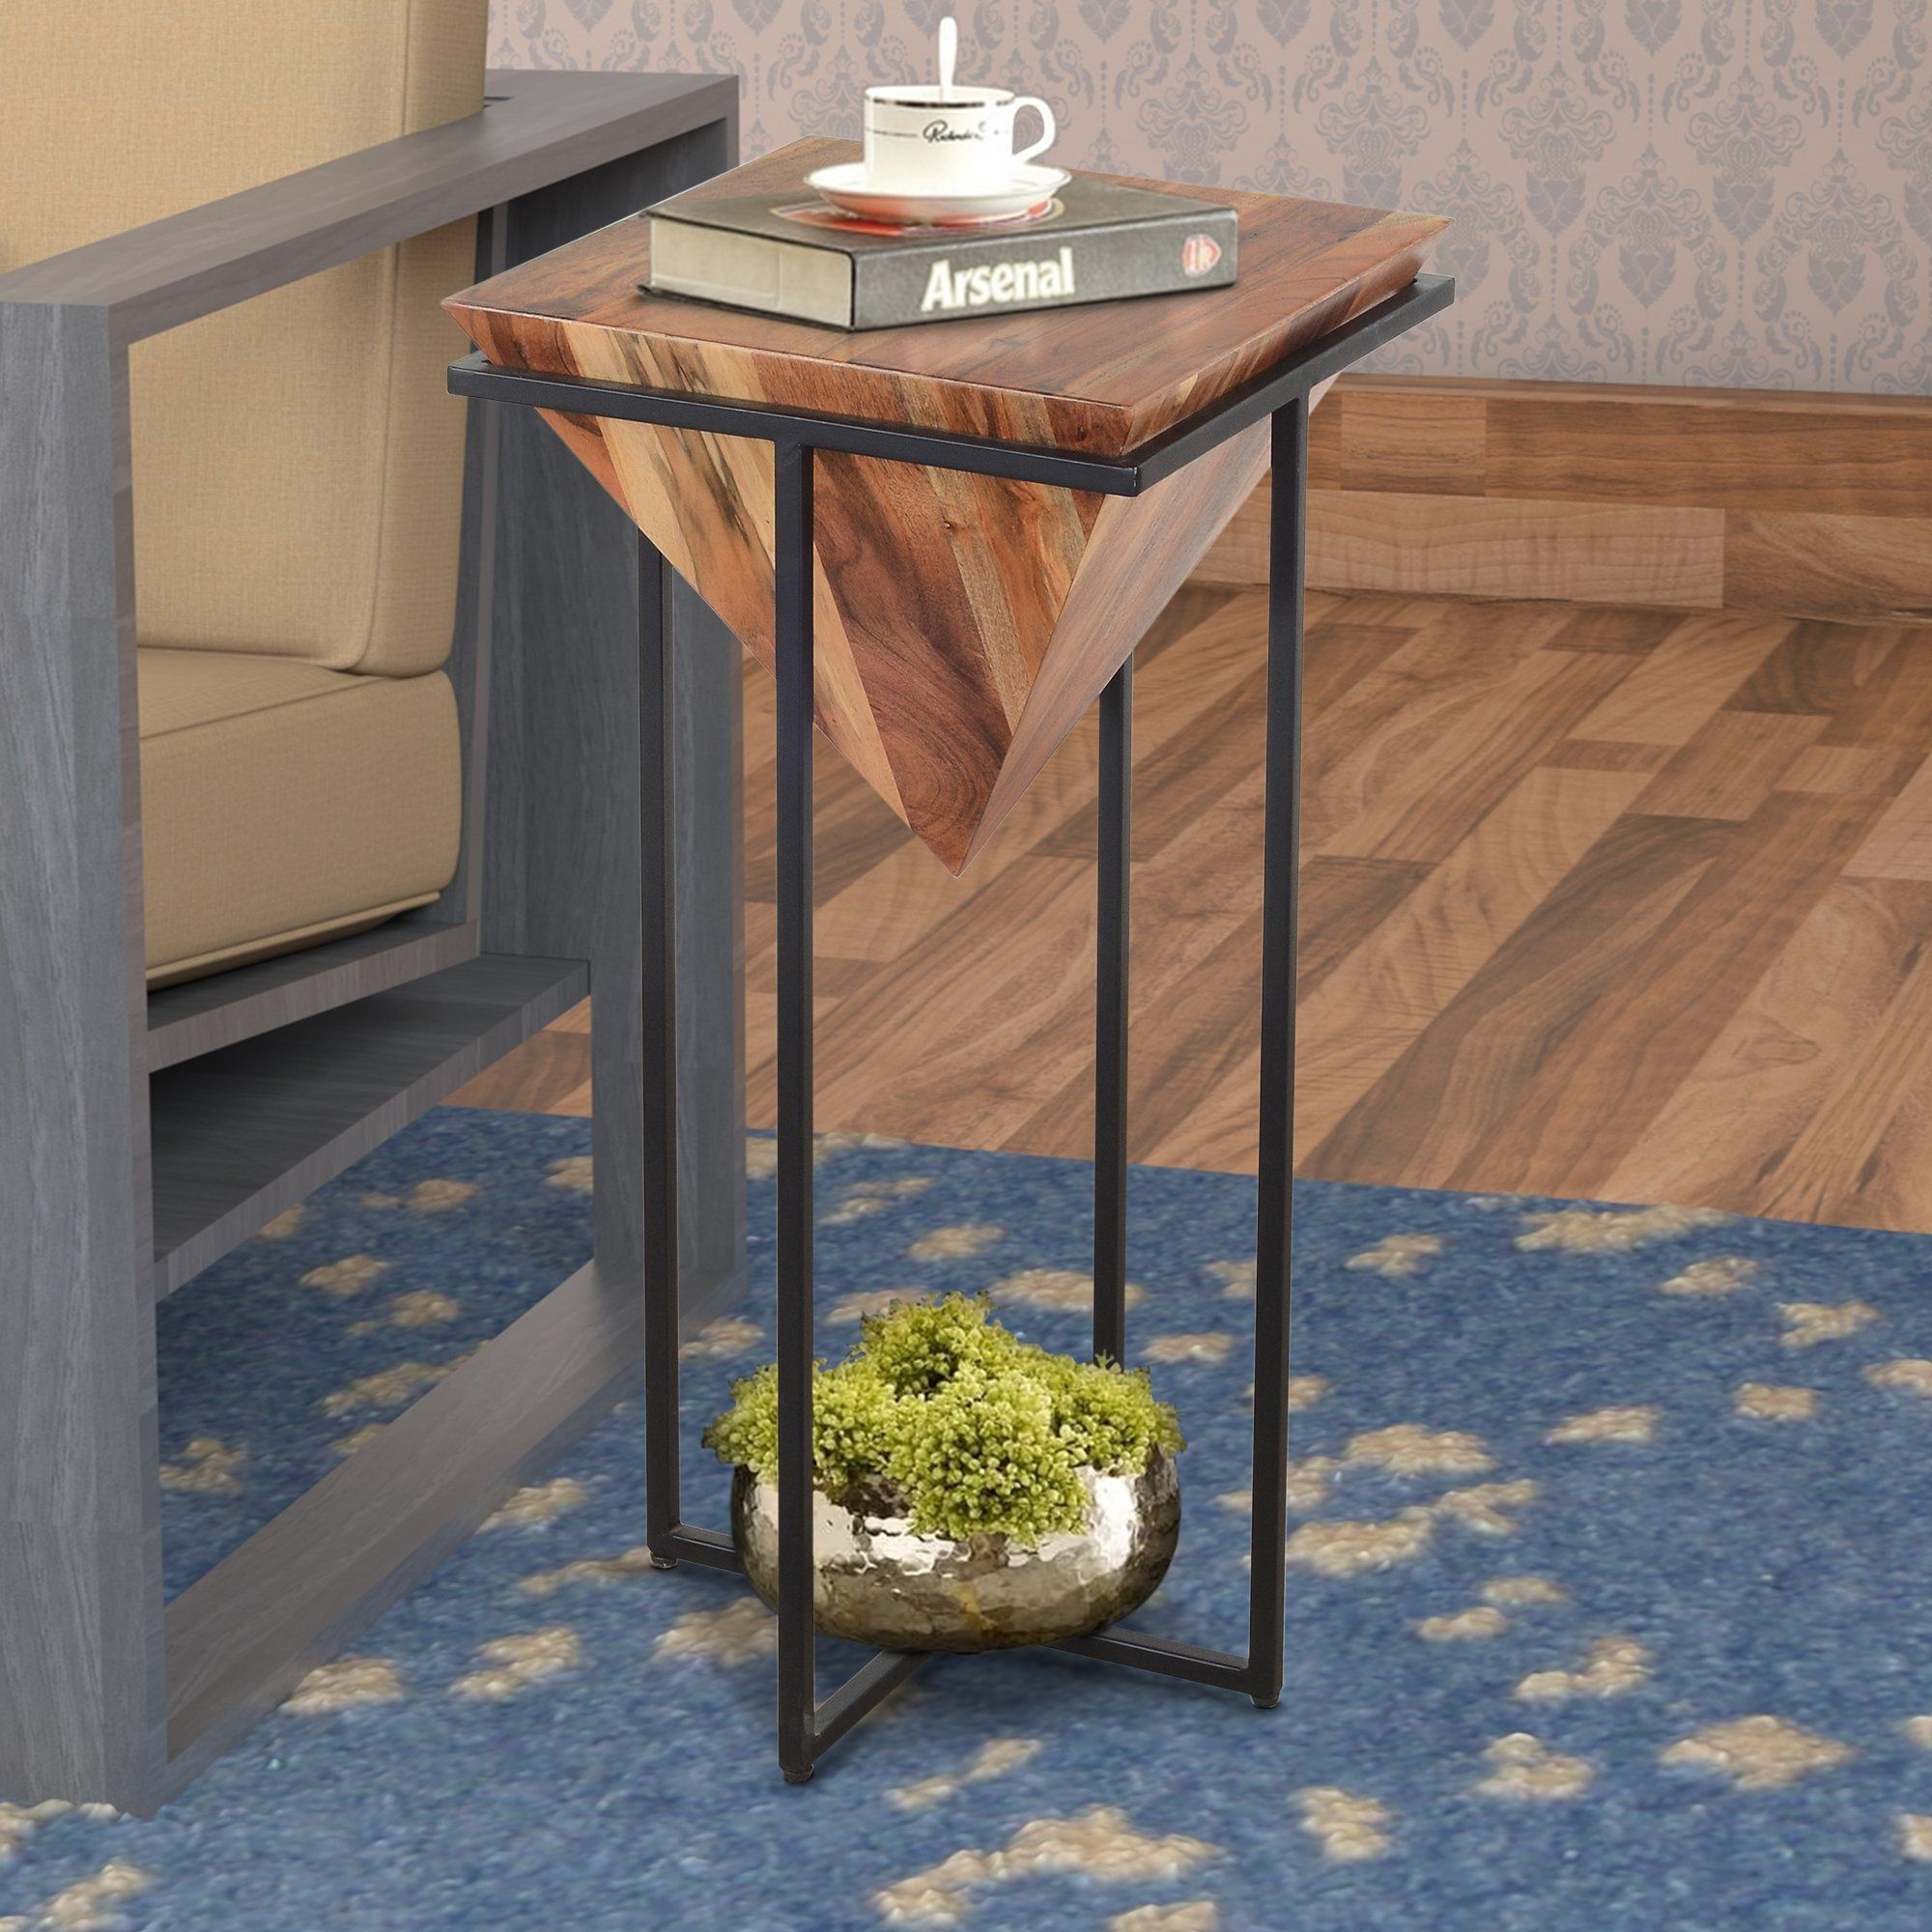 30 Inch Pyramid Shape Wooden Side Table With Cross Metal Base Brown A In 2021 Wooden Side Table Wood End Tables Side Table 30 inch end table